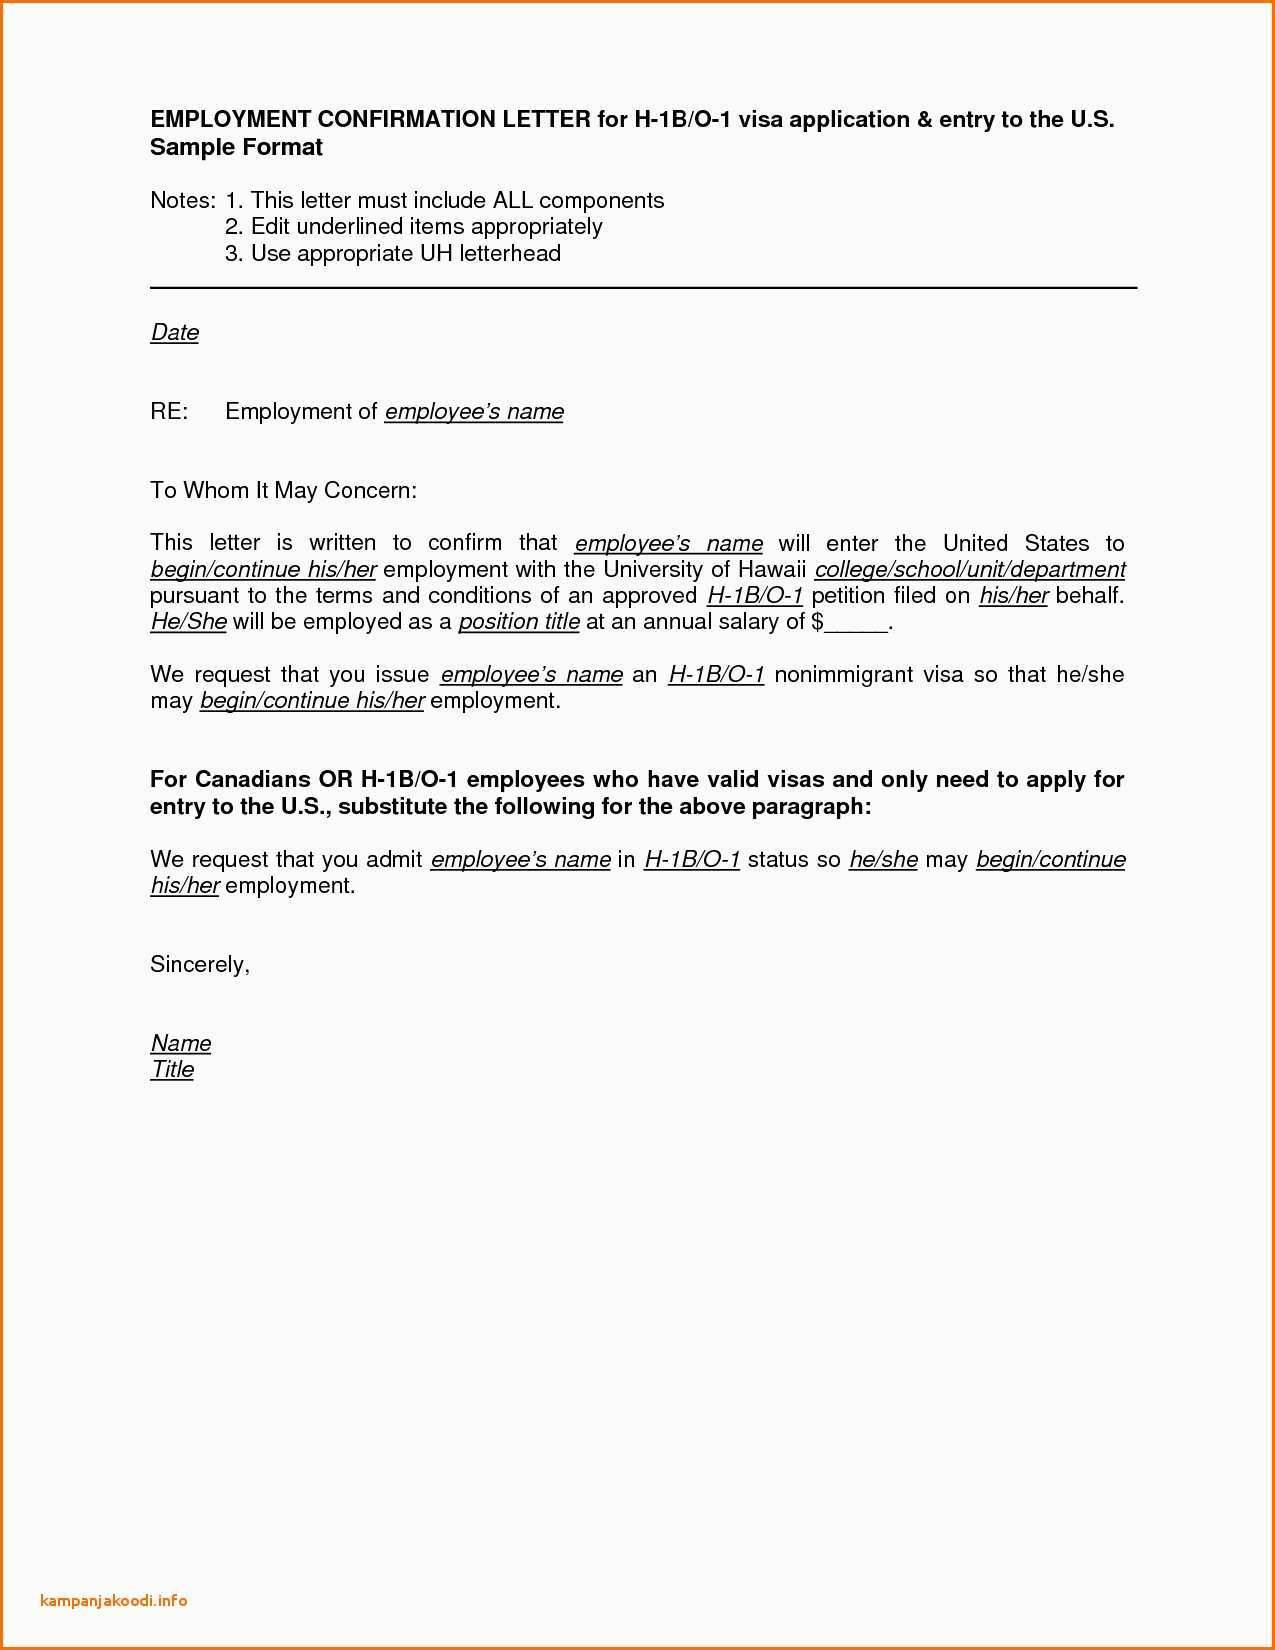 when inserting a letter template, how can a user revise the letter? example-Letter Writing format Date formal Letter Template Unique bylaws Ideas Writing A Letter 31 11-j